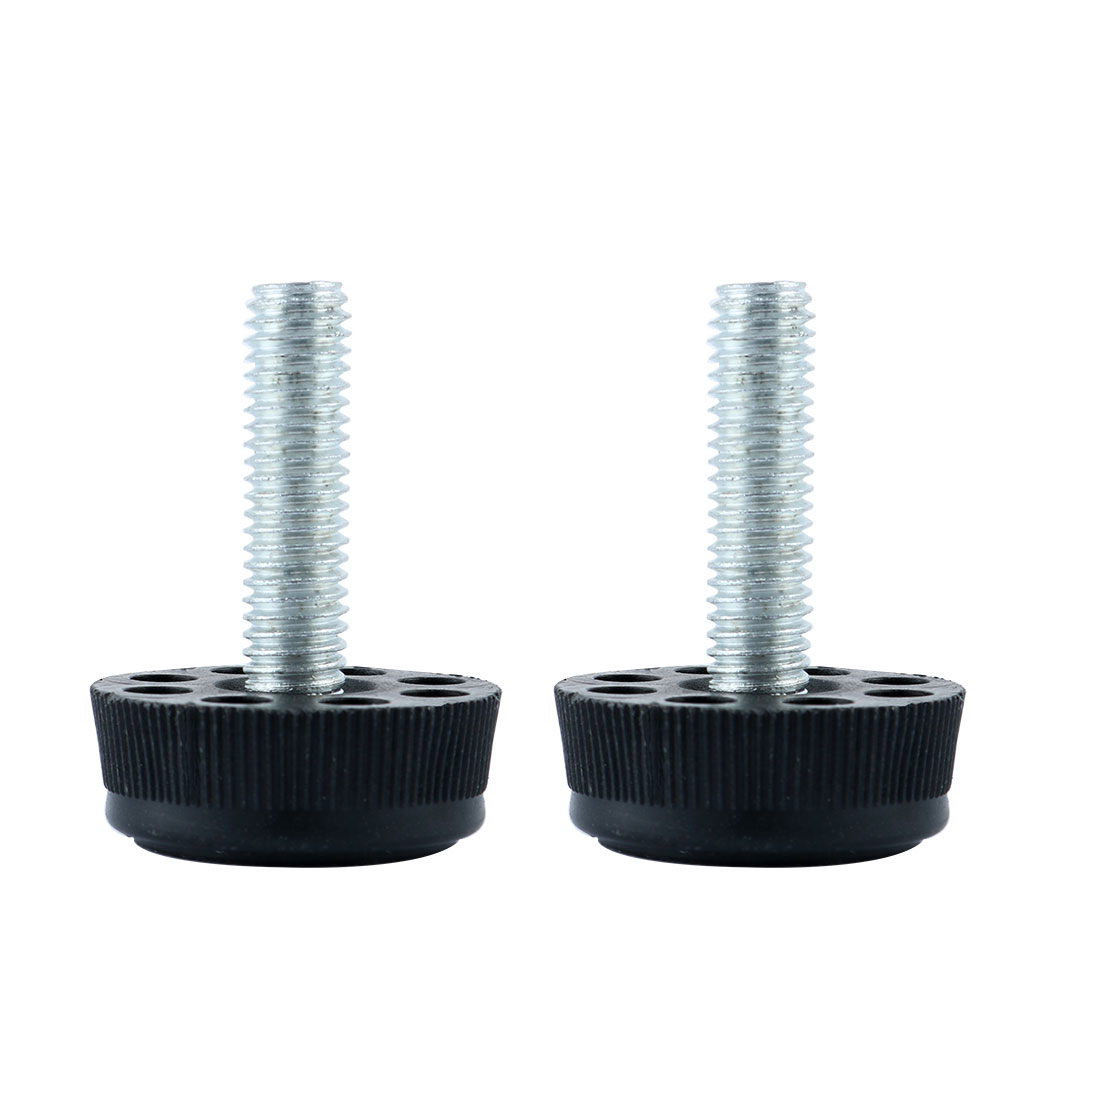 Metal Threaded Rod 8 Holes Furniture Table Chair Leg Foot Pad Black 2 Pcs